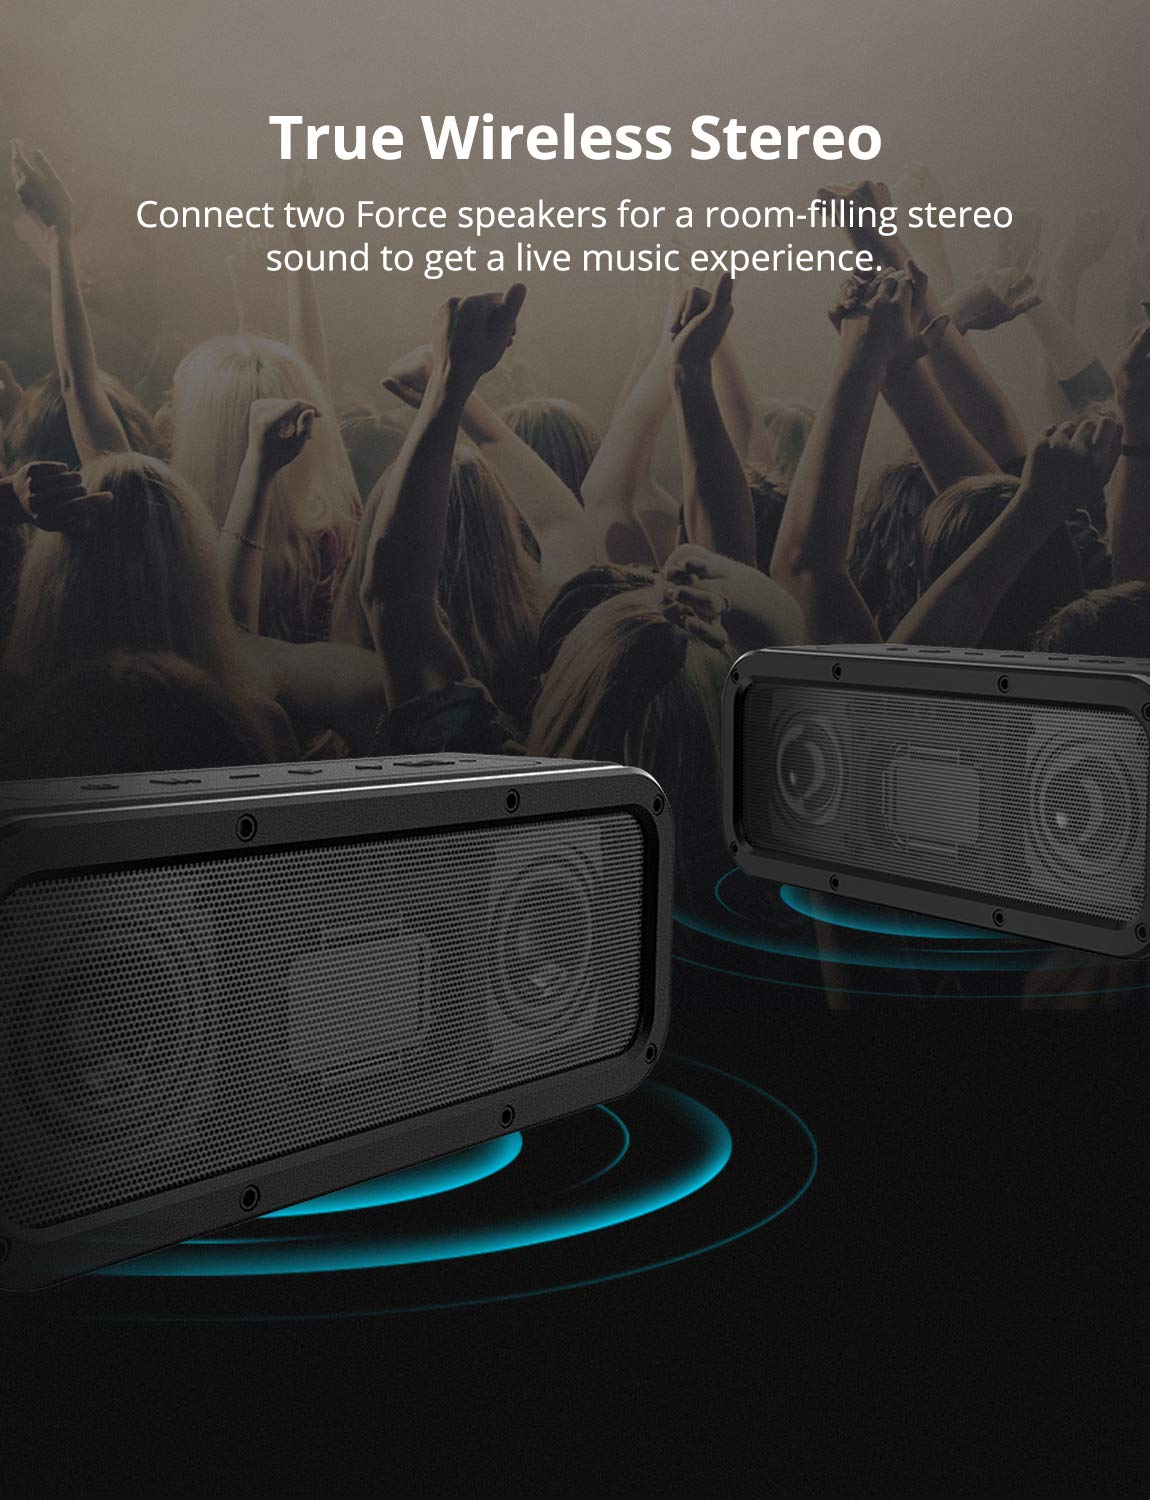 Portable Bluetooth Speakers, Tronsmart Force SoundPulse 40W IPX7 Waterproof Bluetooth 4.2 Wireless Speakers with 15-Hour Playtime, TWS, Dual-Driver with Built-in Mic, NFC, Deep Bass (Force) by Tronsmart (Image #4)